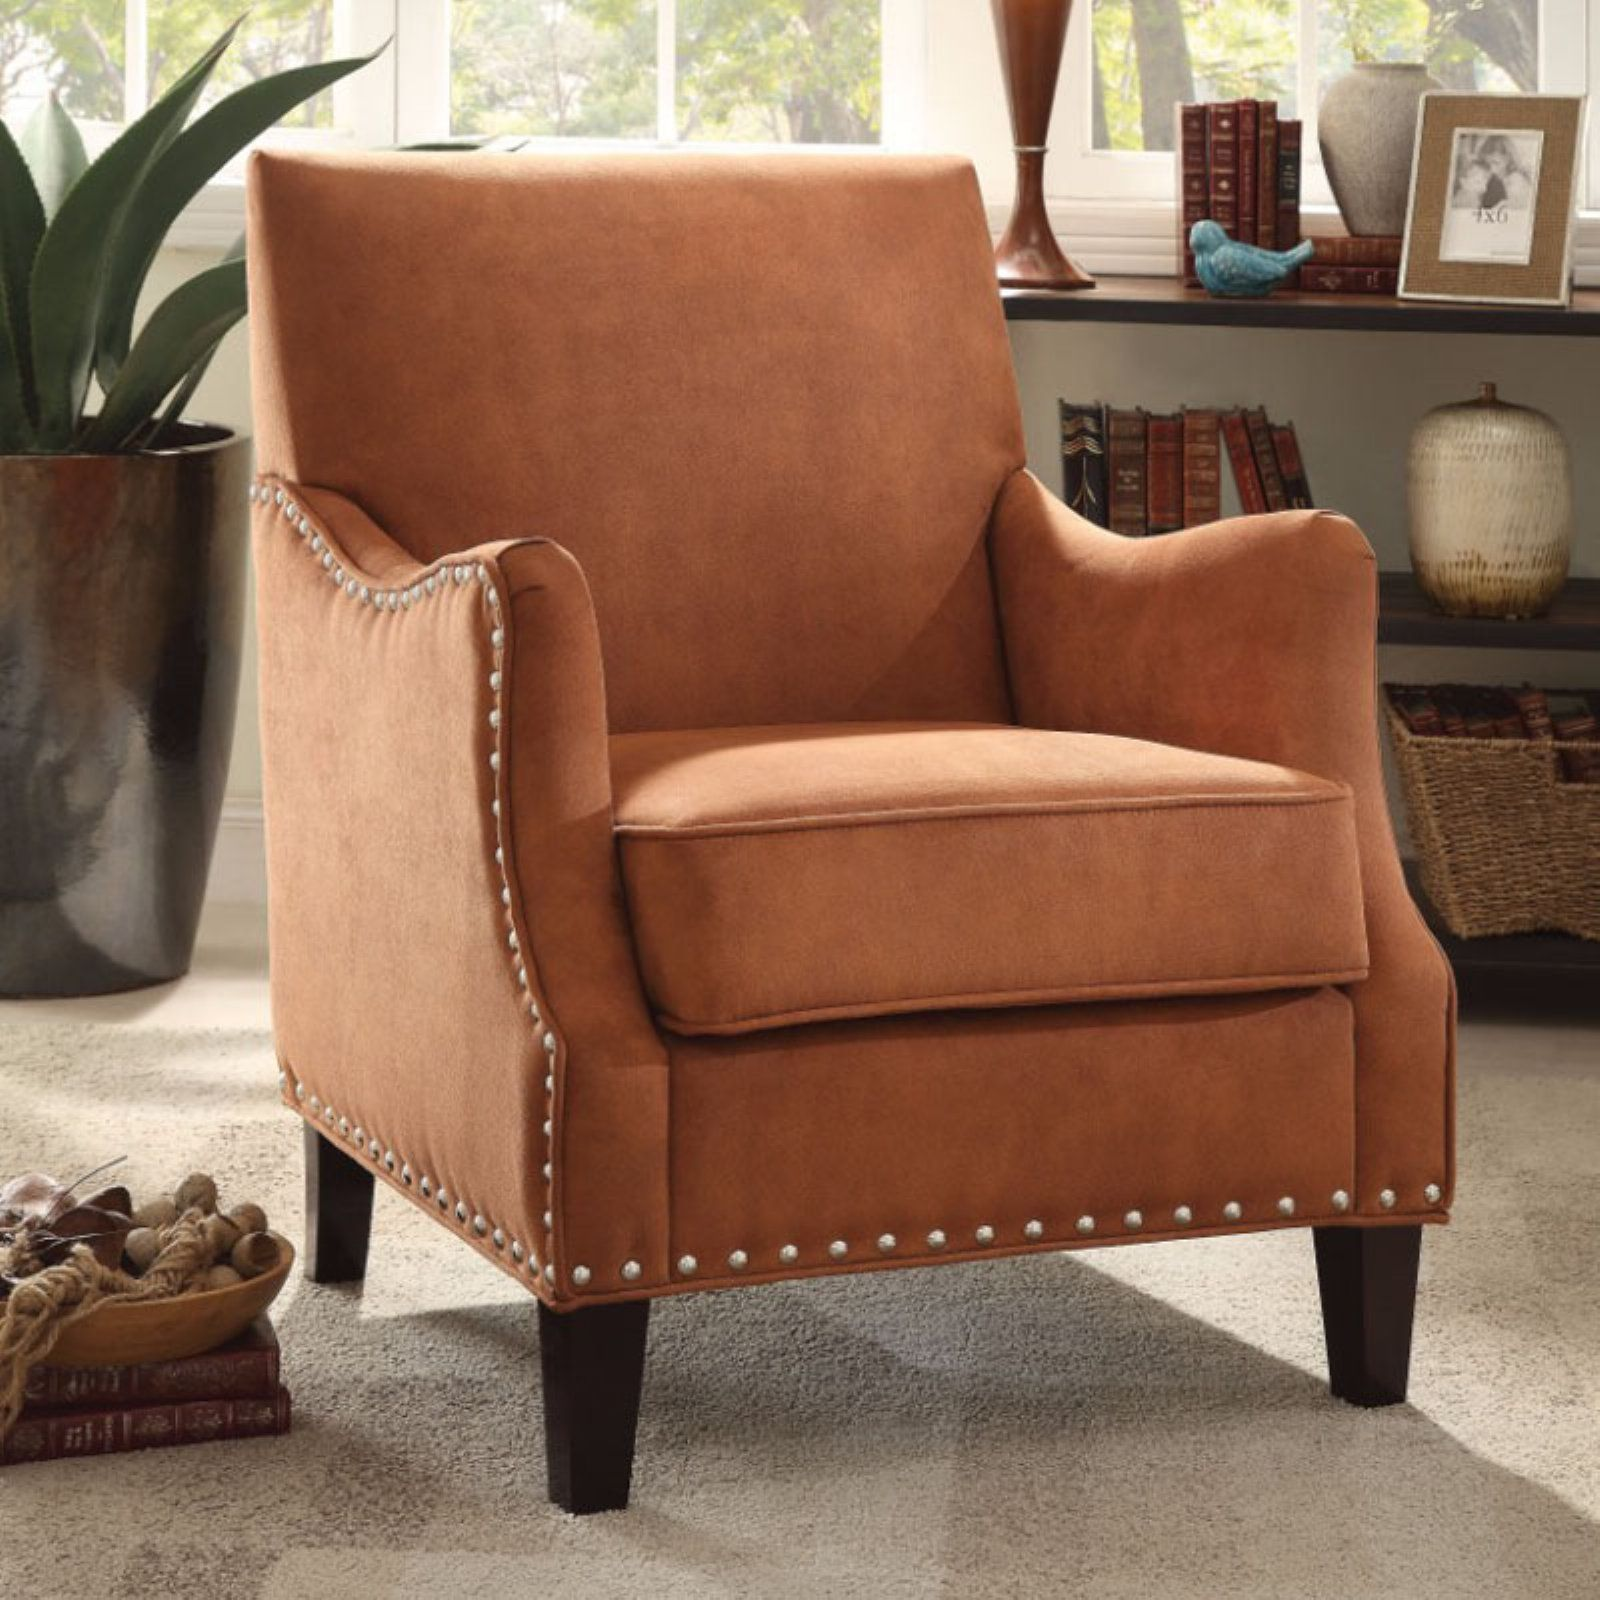 Outstanding Benzara Classy Look Accent Chair Orange In 2019 Products Gmtry Best Dining Table And Chair Ideas Images Gmtryco